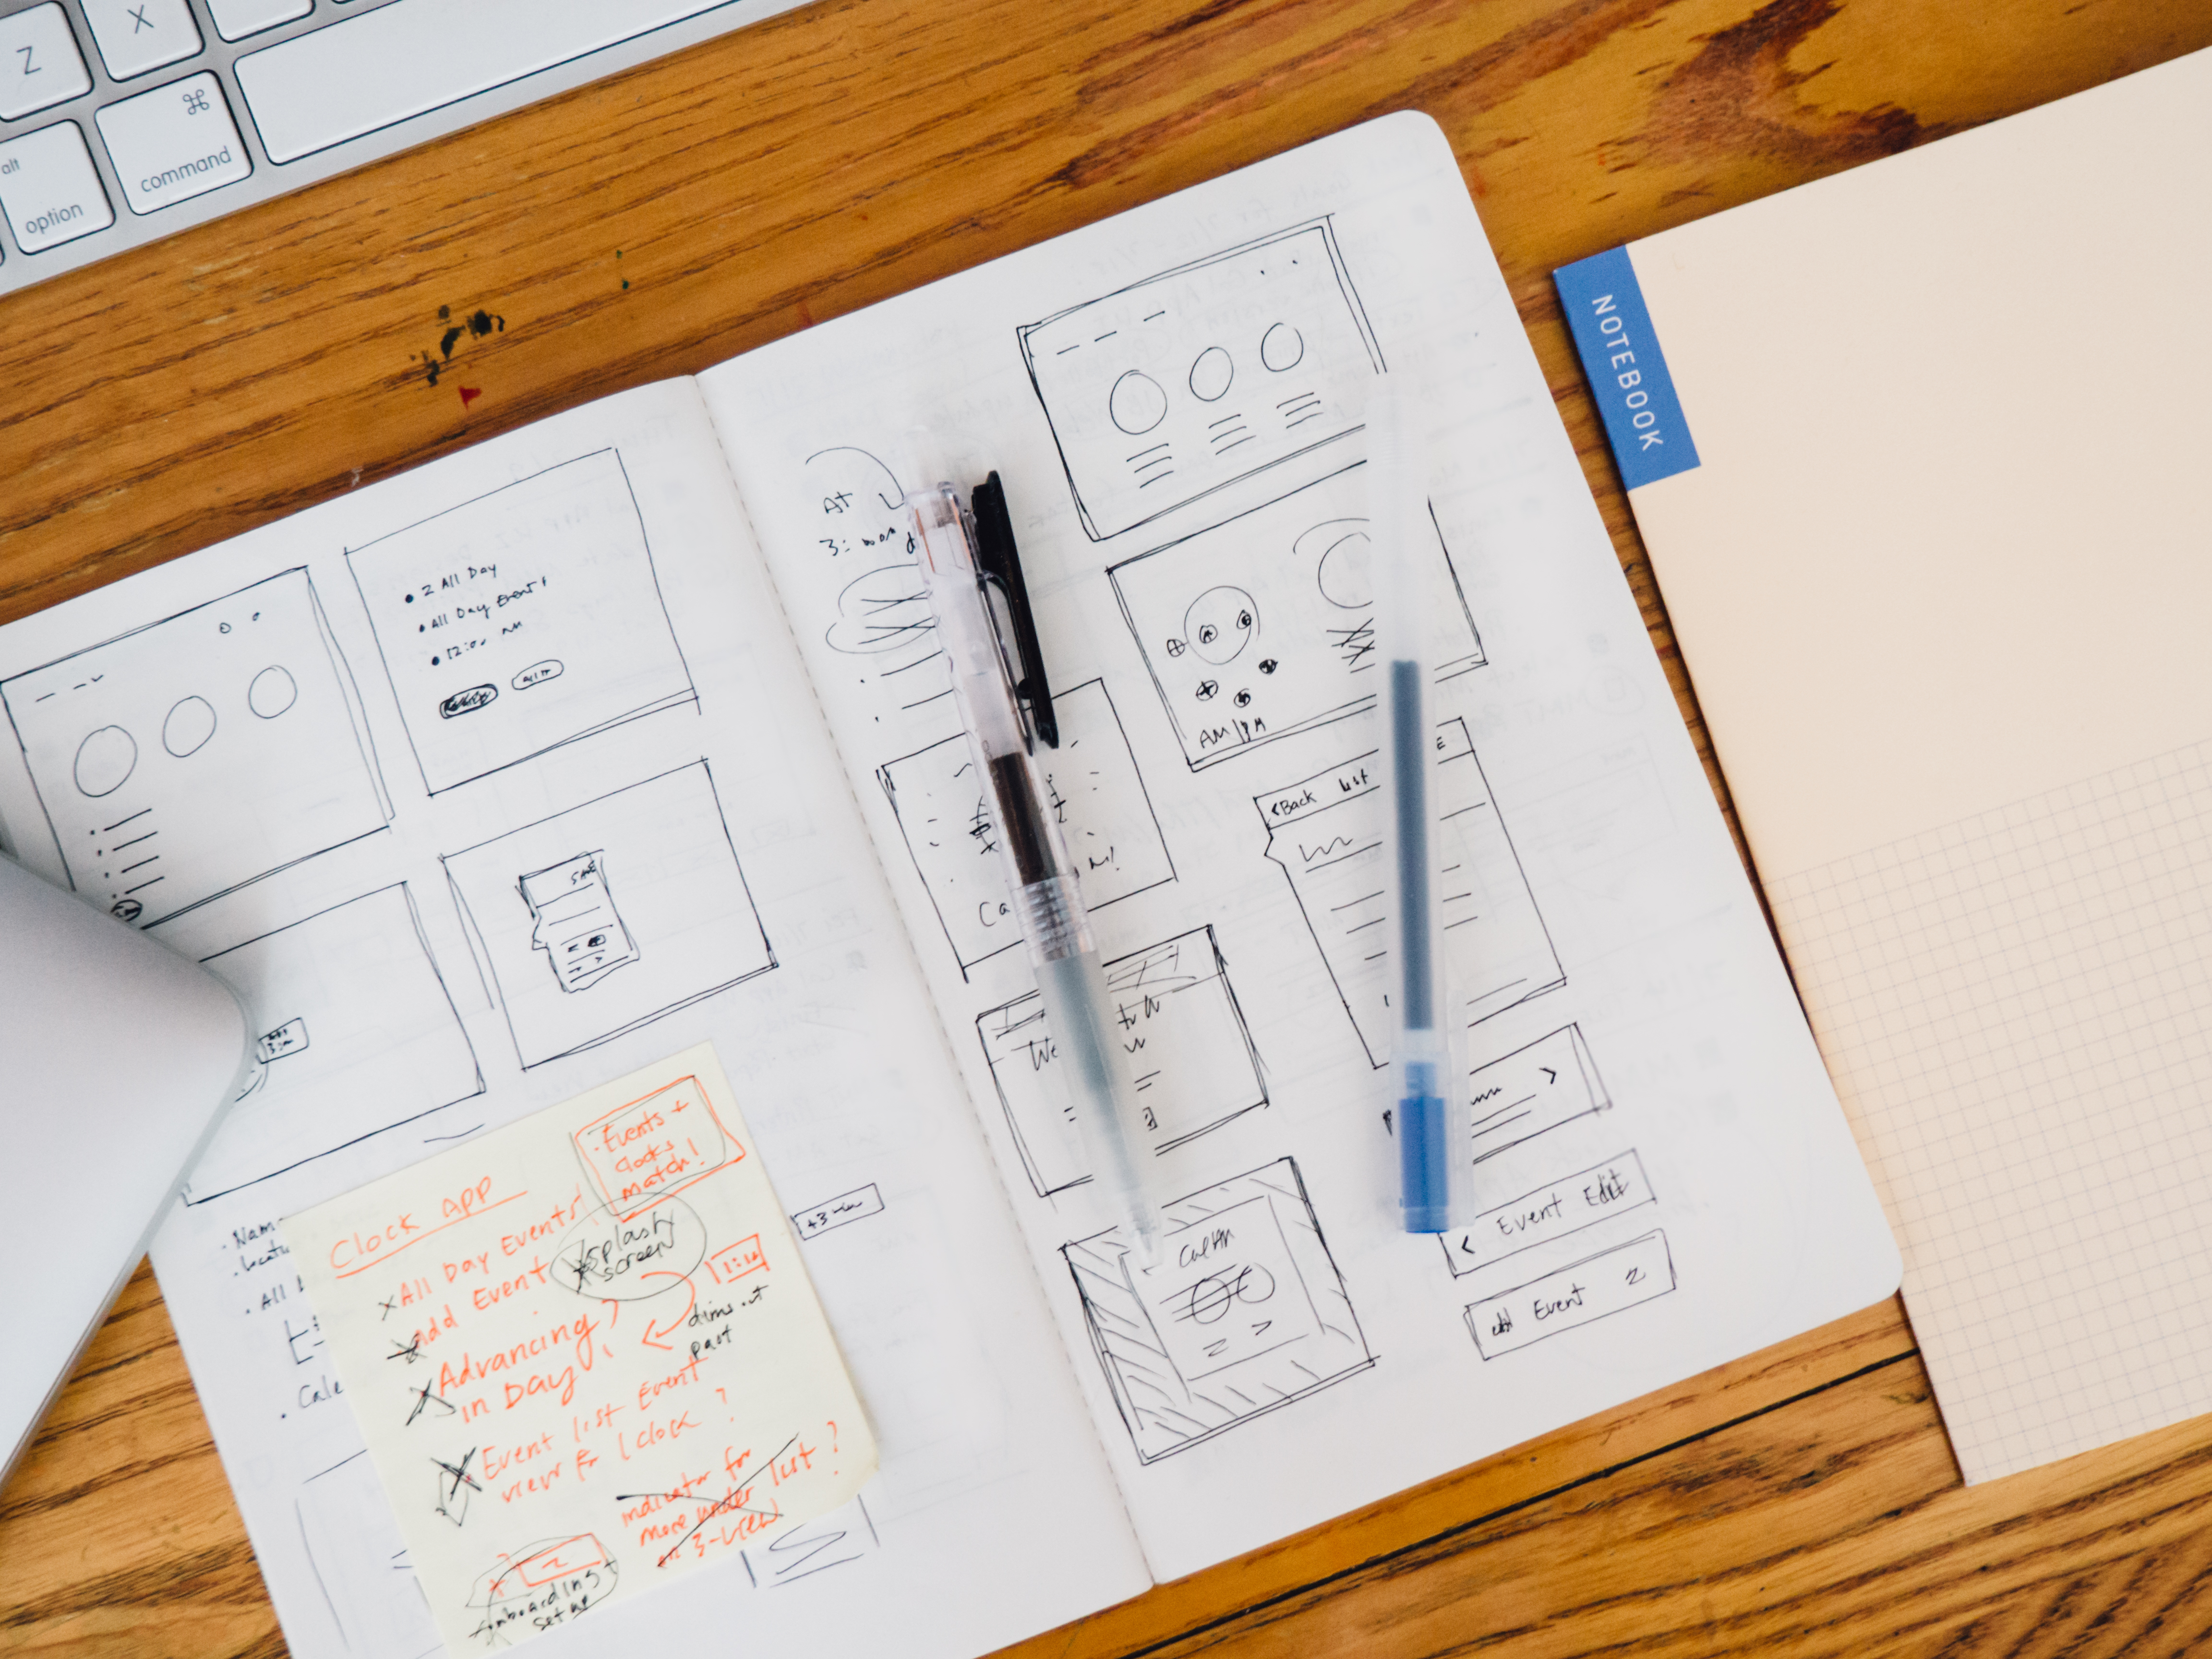 How Do You Know If You Have a Good Idea for a Business?